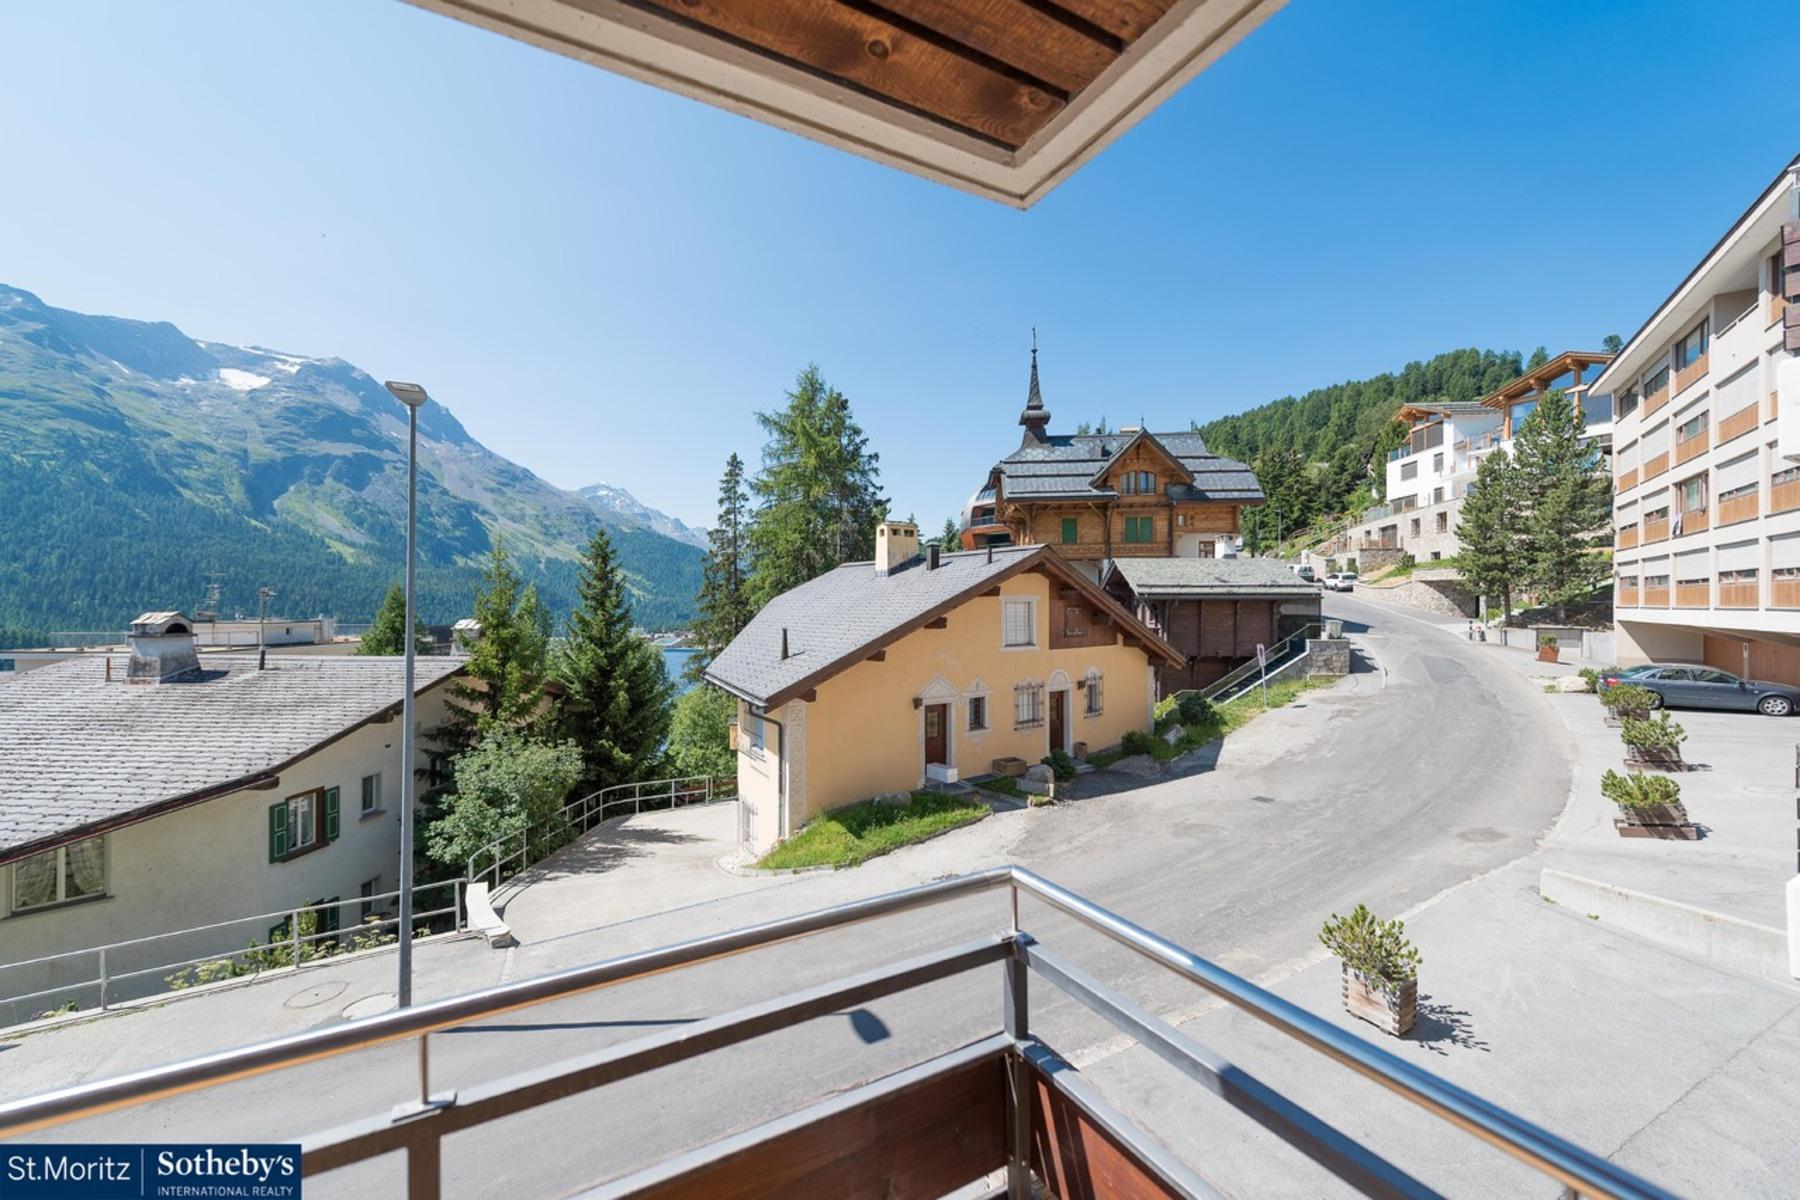 Apartment for Sale at Bright & luxurious furnished 2.5 room apartment in the center St. Moritz St. Moritz, Grisons, 7500 Switzerland